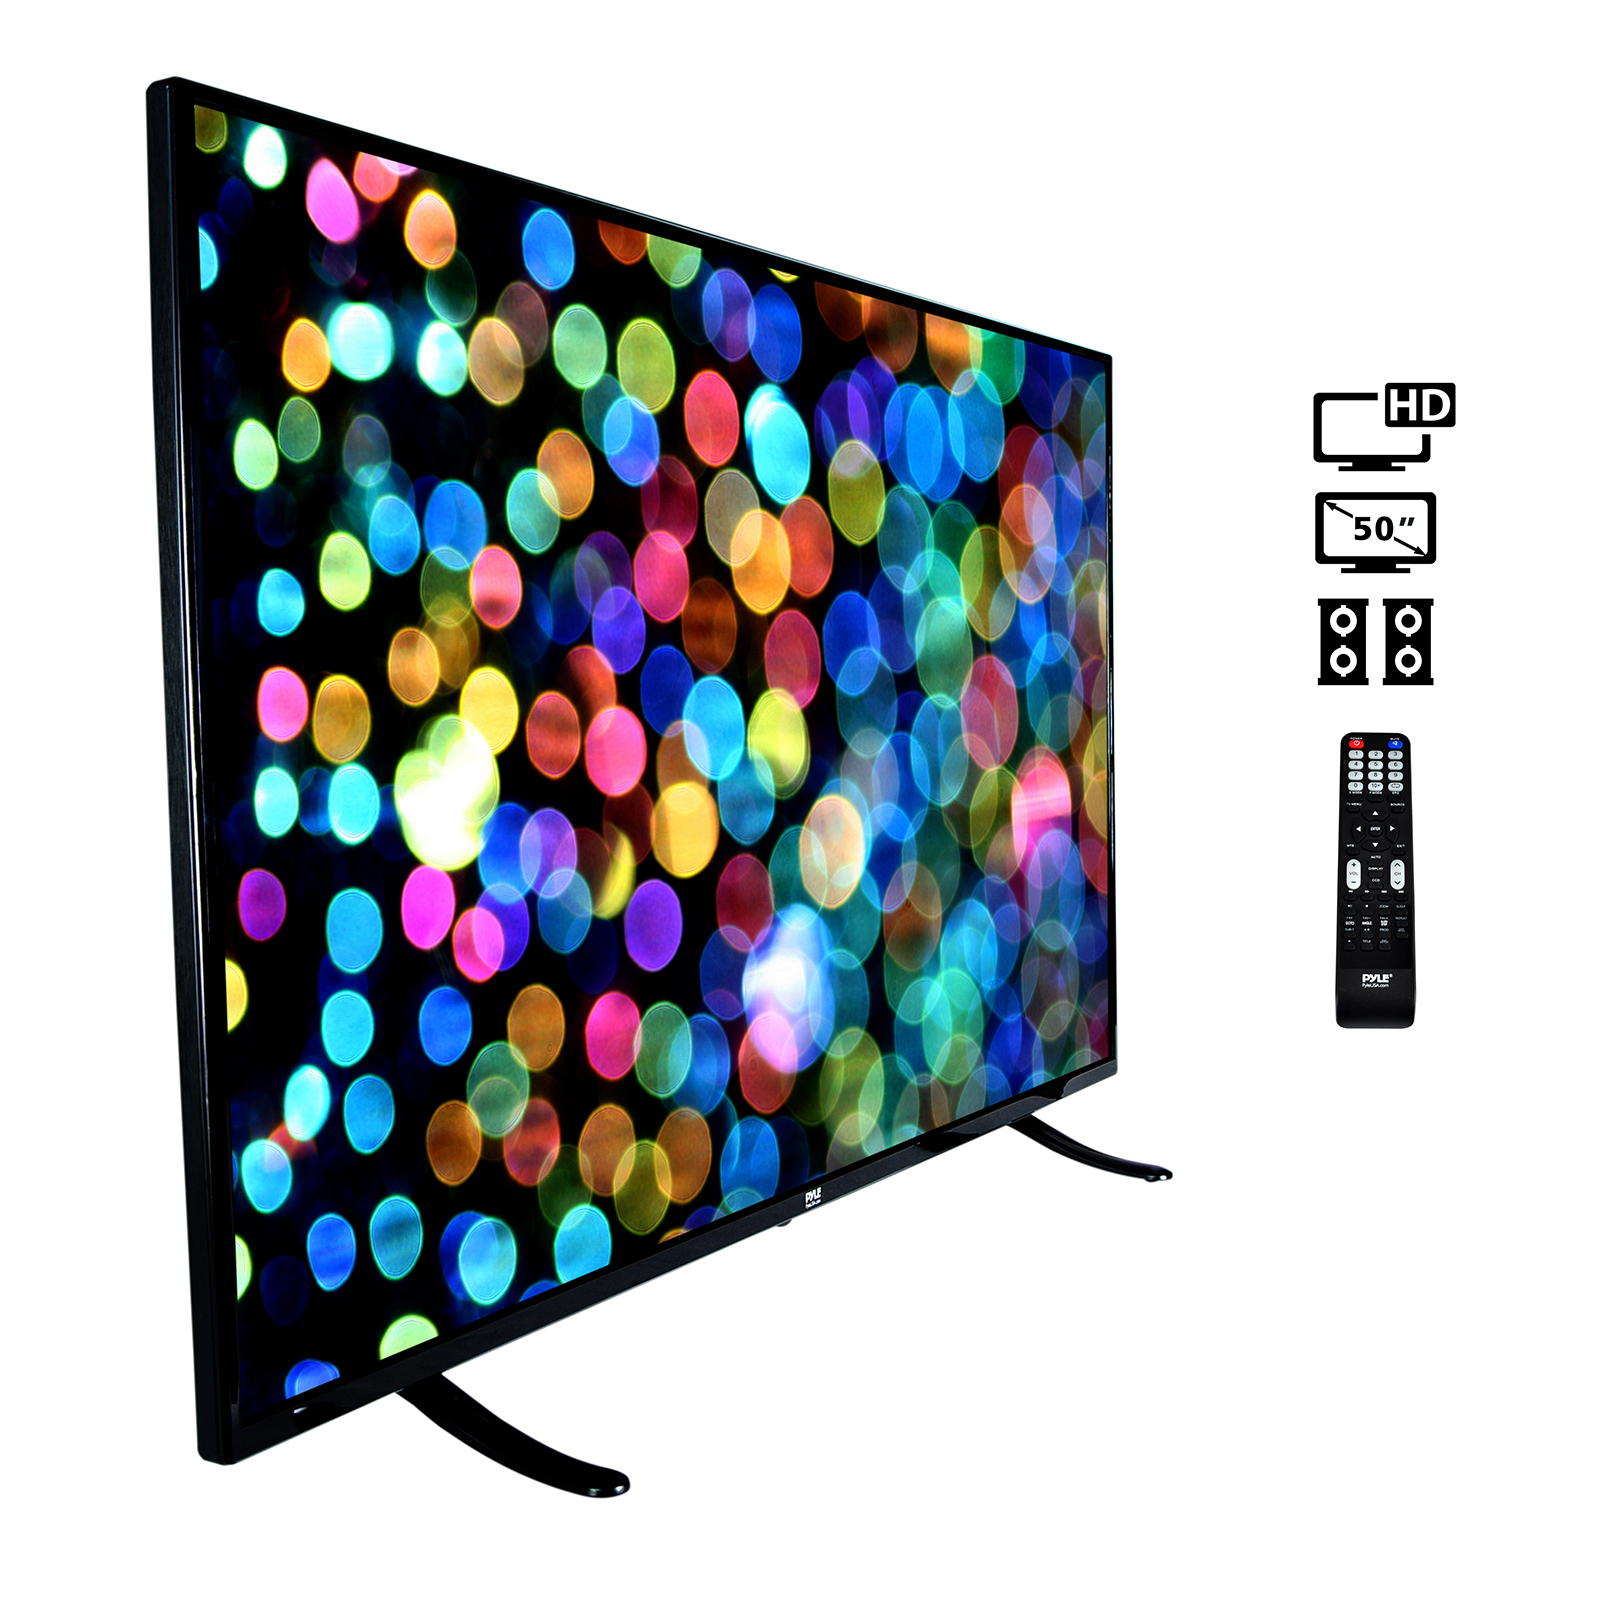 "50"" HD LED TV - 1080p HDTV Television"